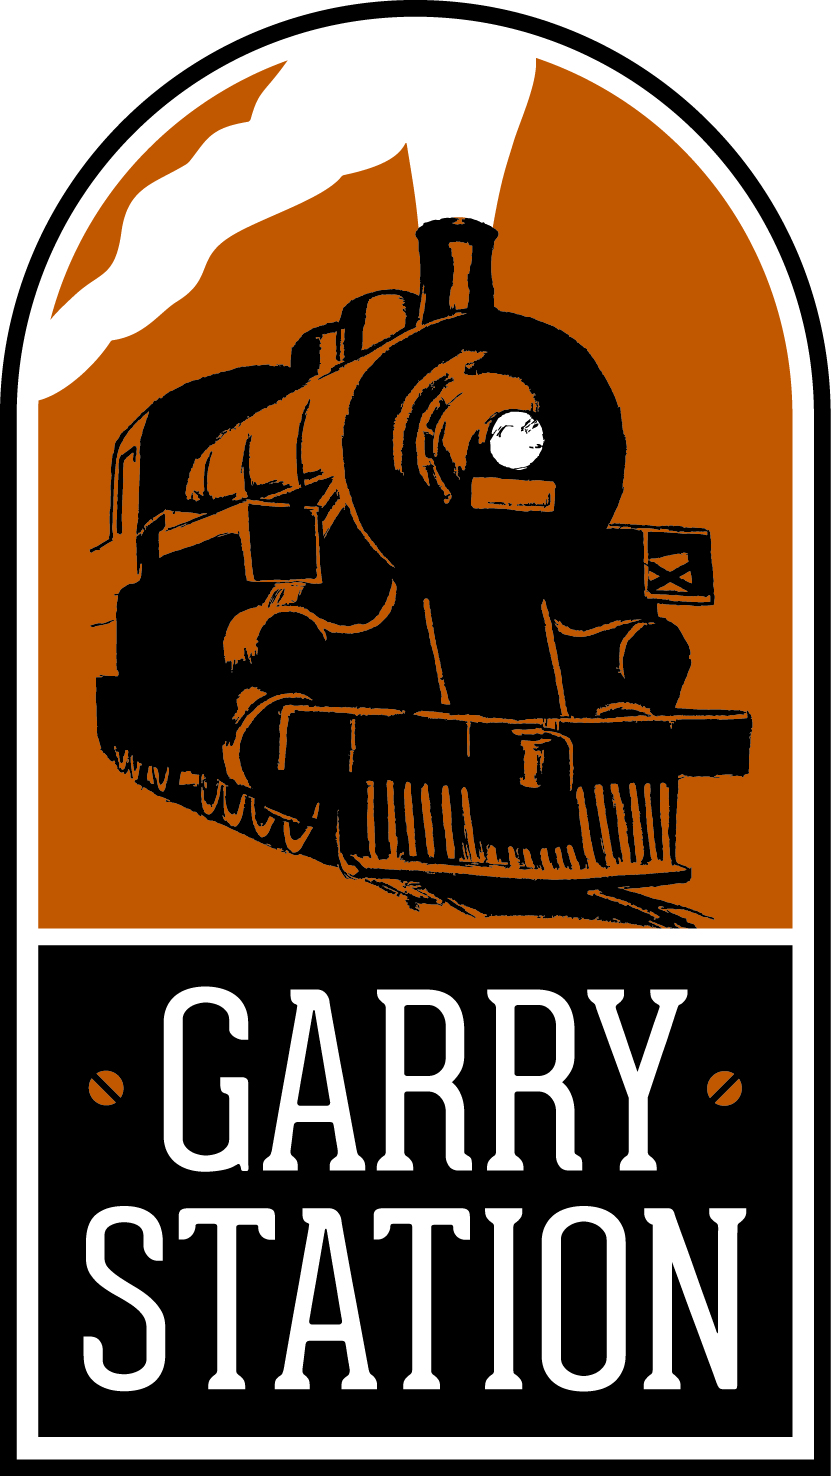 Garry_Station_Logo metallic